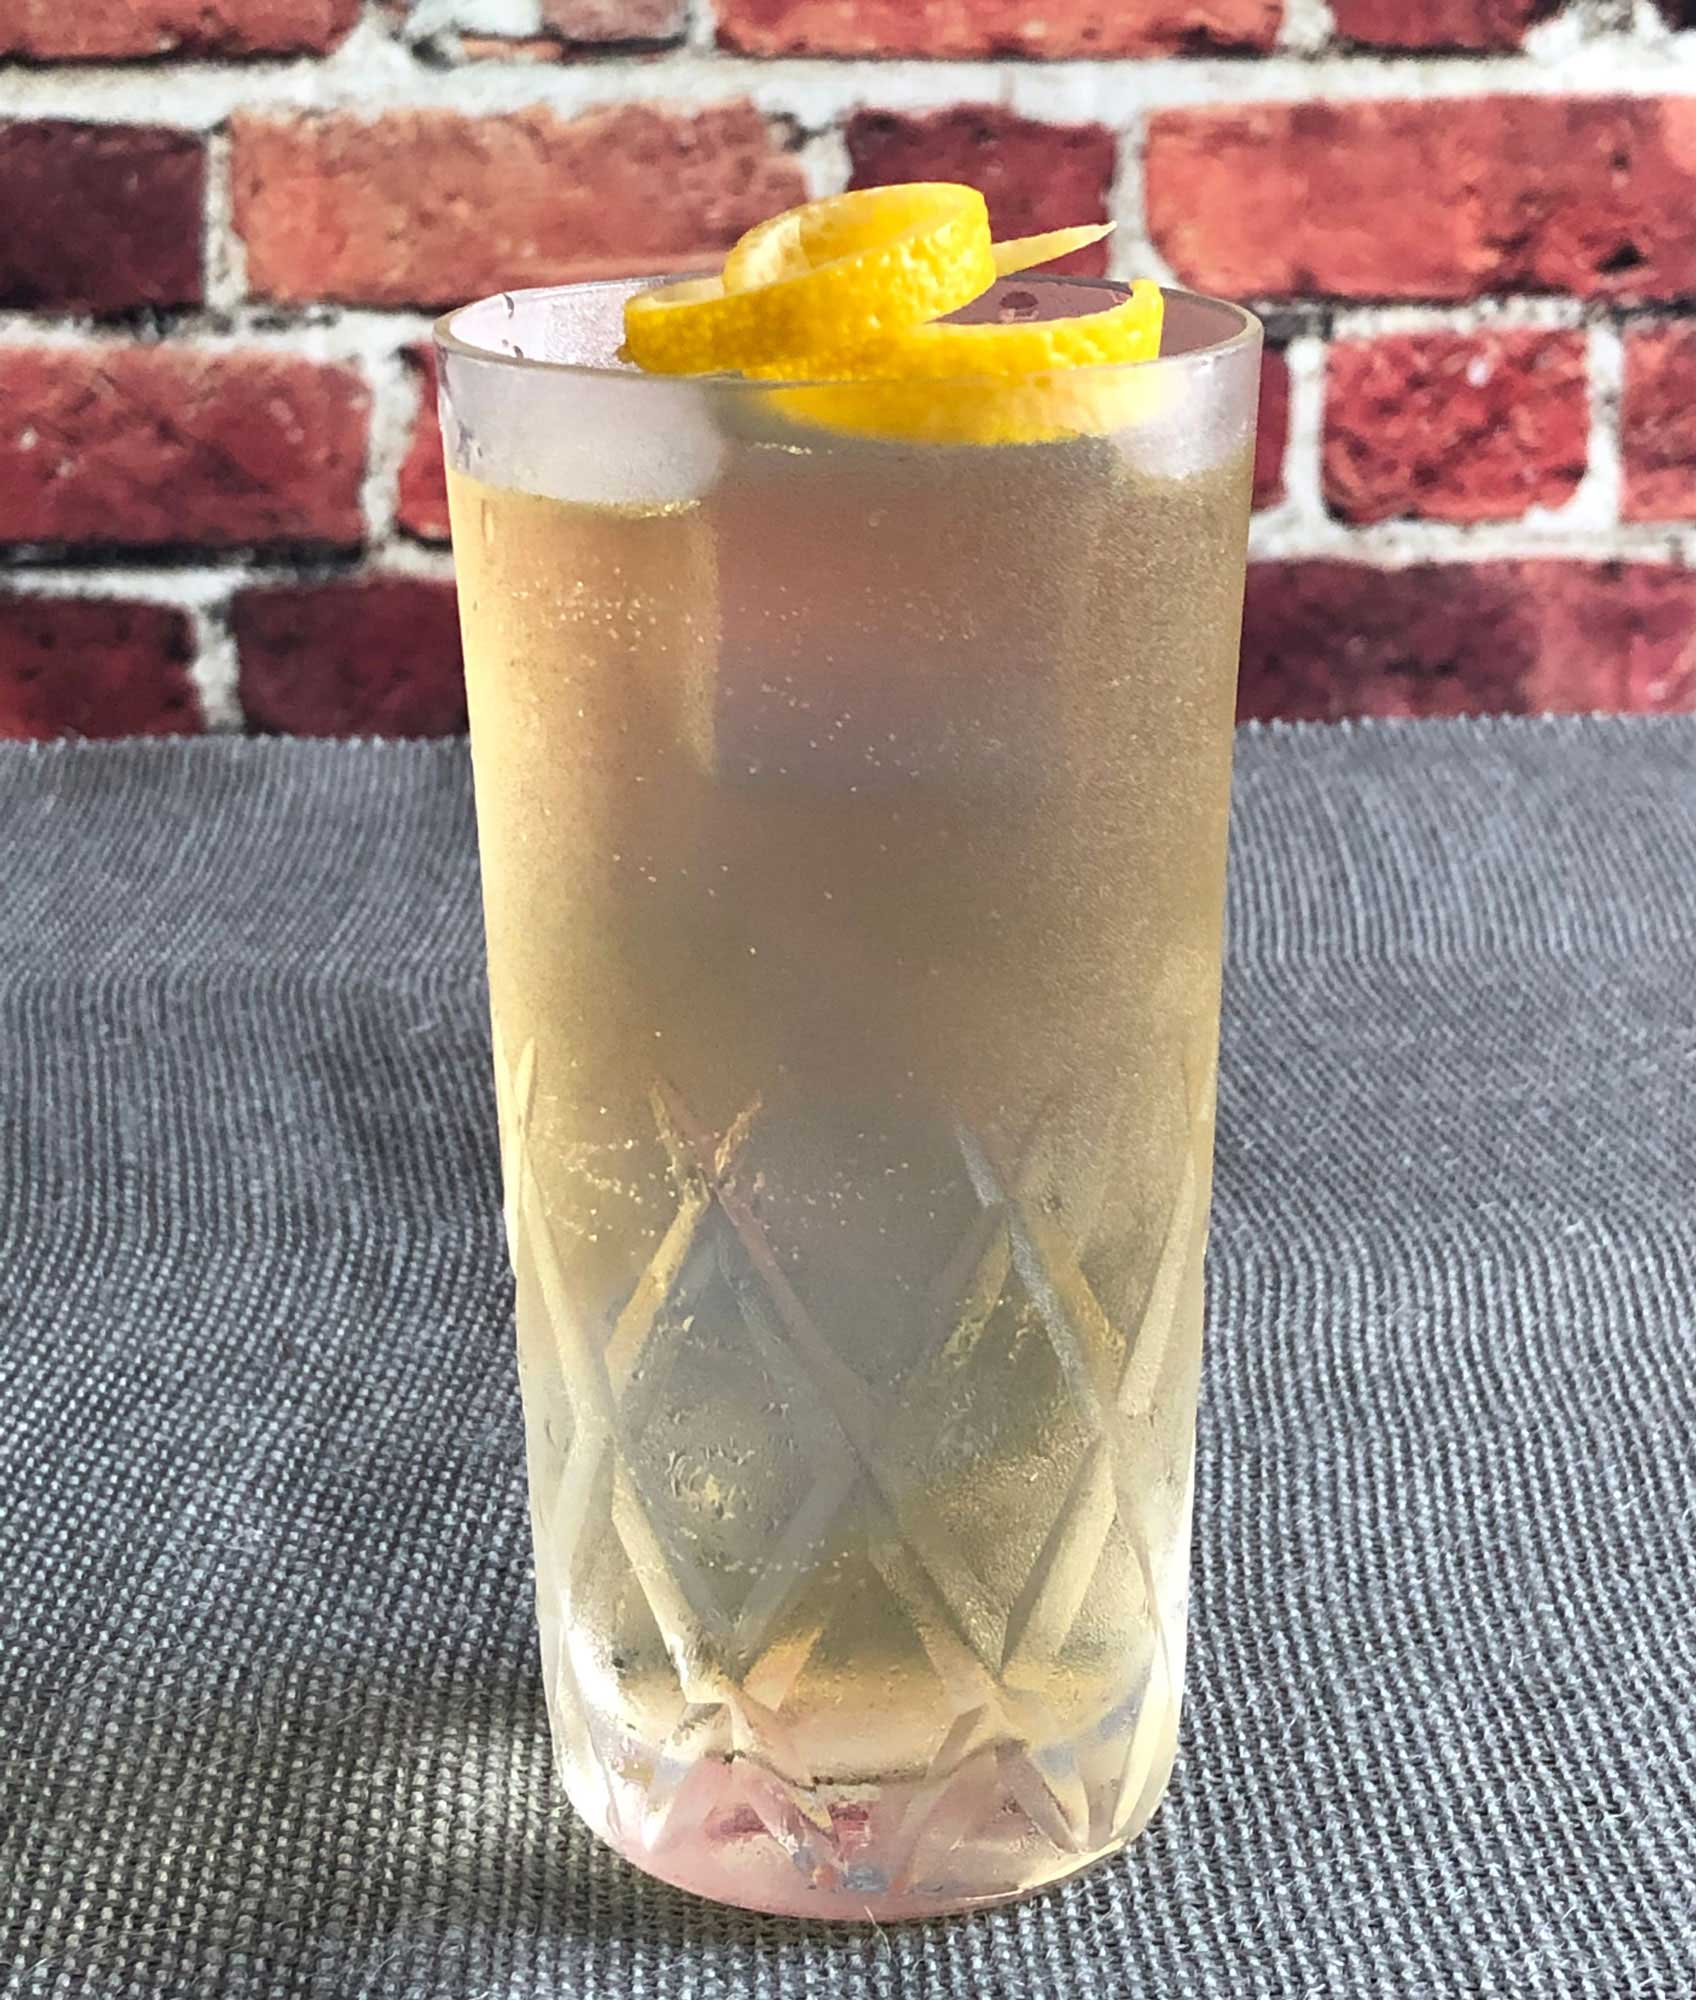 An example of the Auvergne Summer, the mixed drink (cocktail) featuring Rothman & Winter Orchard Peach Liqueur, Salers Gentian Apéritif, and soda water; photo by Lee Edwards